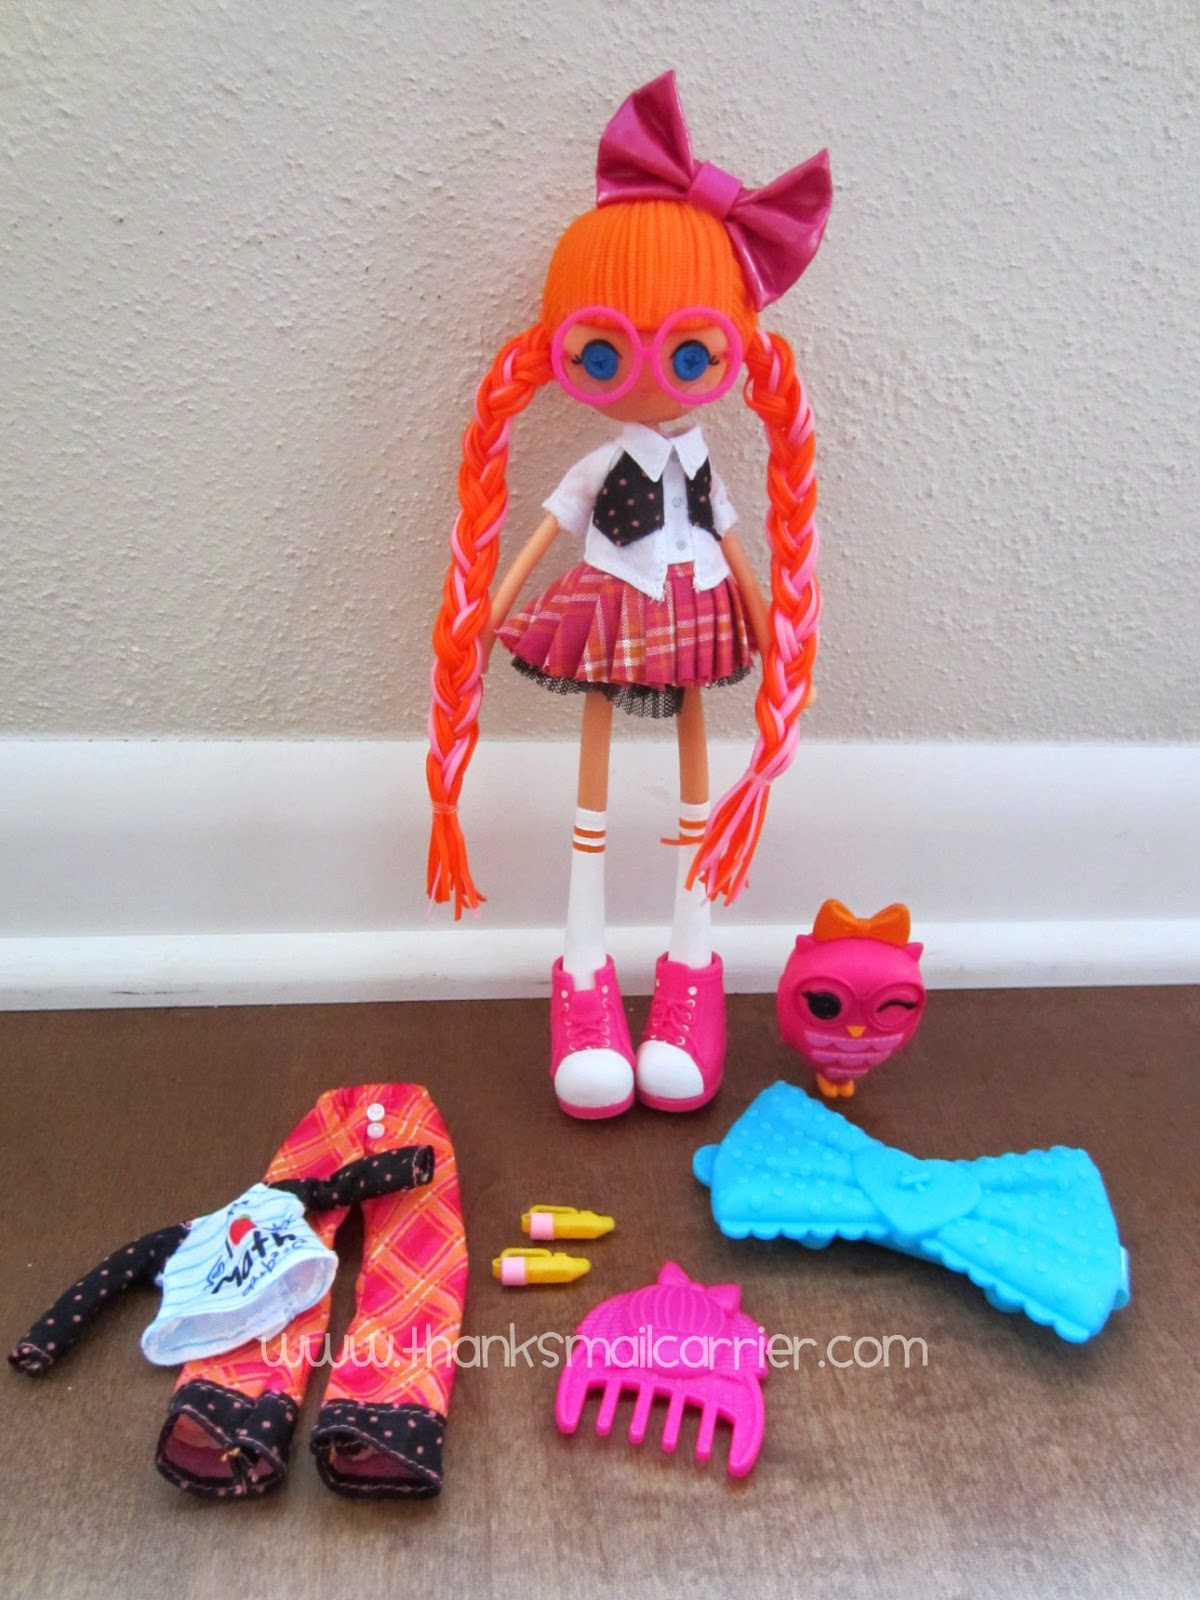 Lalaloopsy Girls Bea Spells-a-Lot